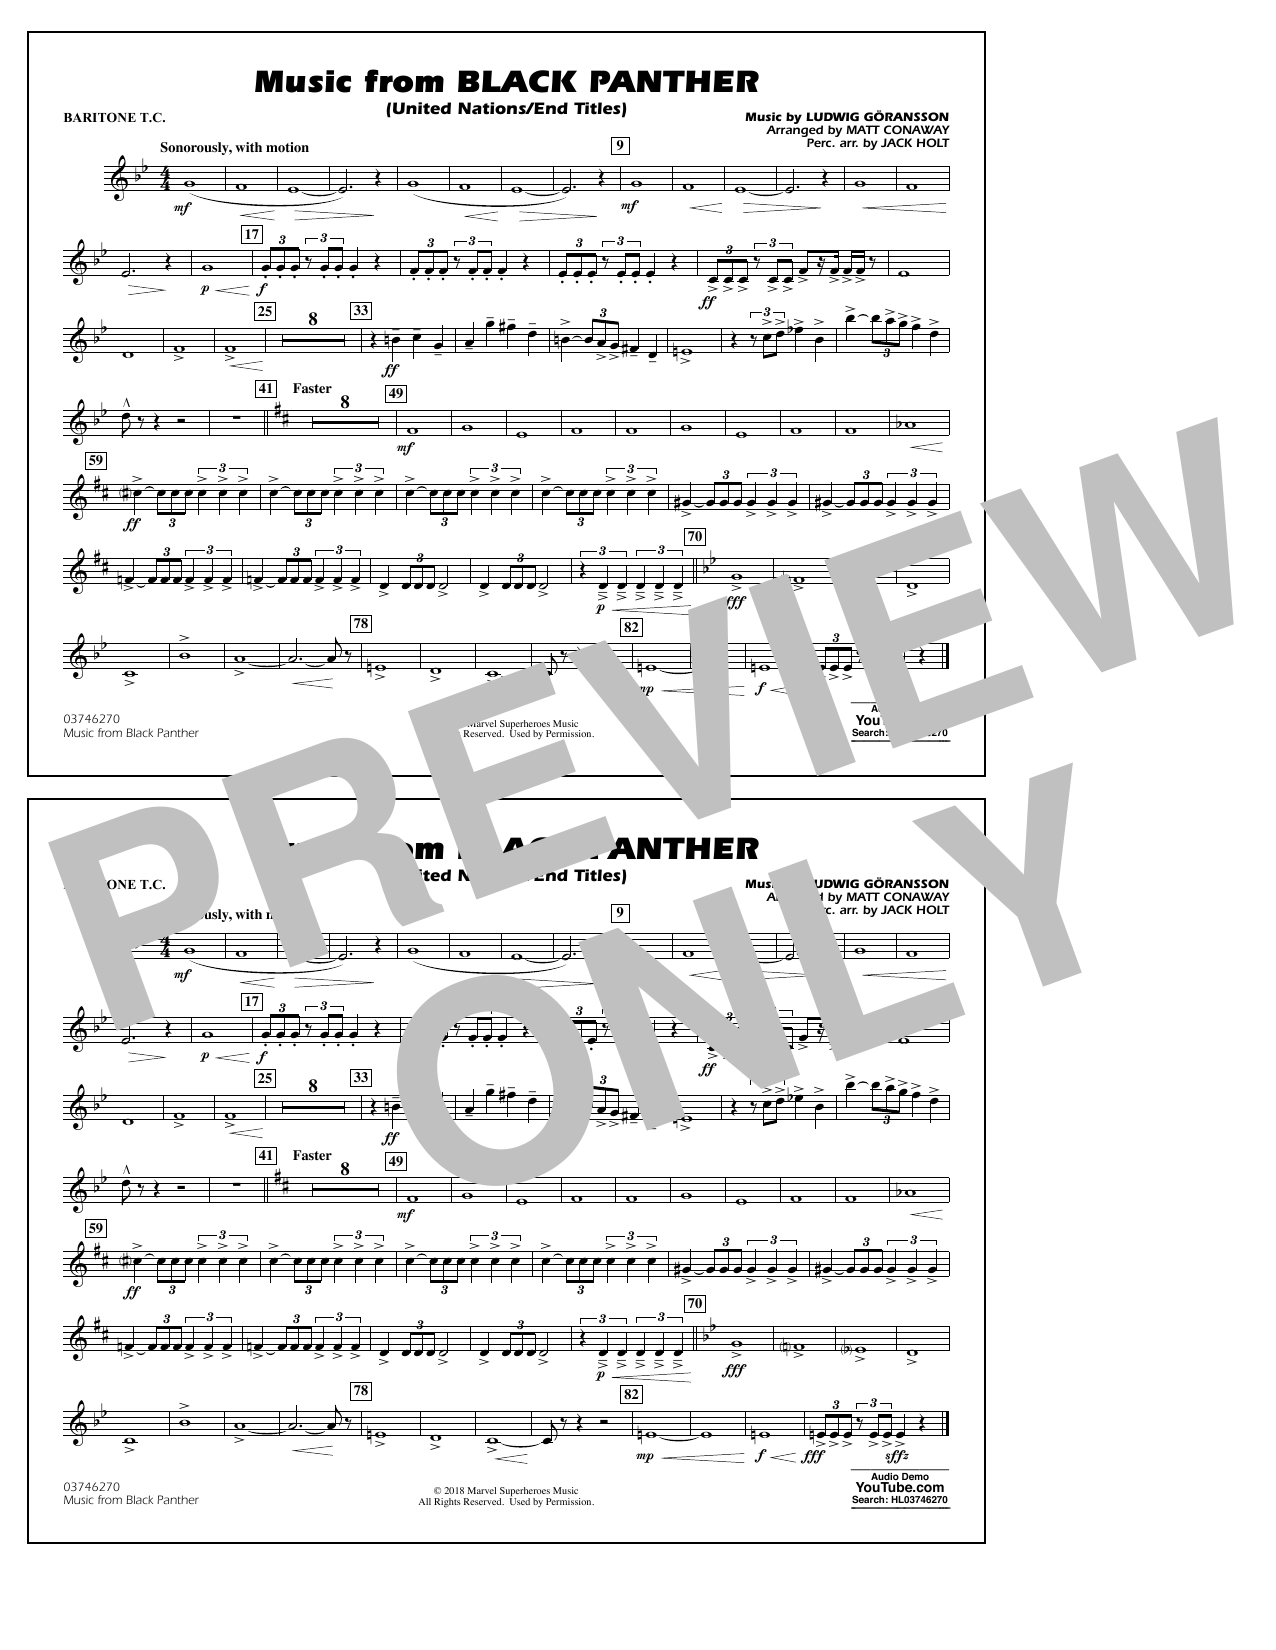 Music from Black Panther (arr. Matt Conaway) - Baritone T.C. (Marching Band)